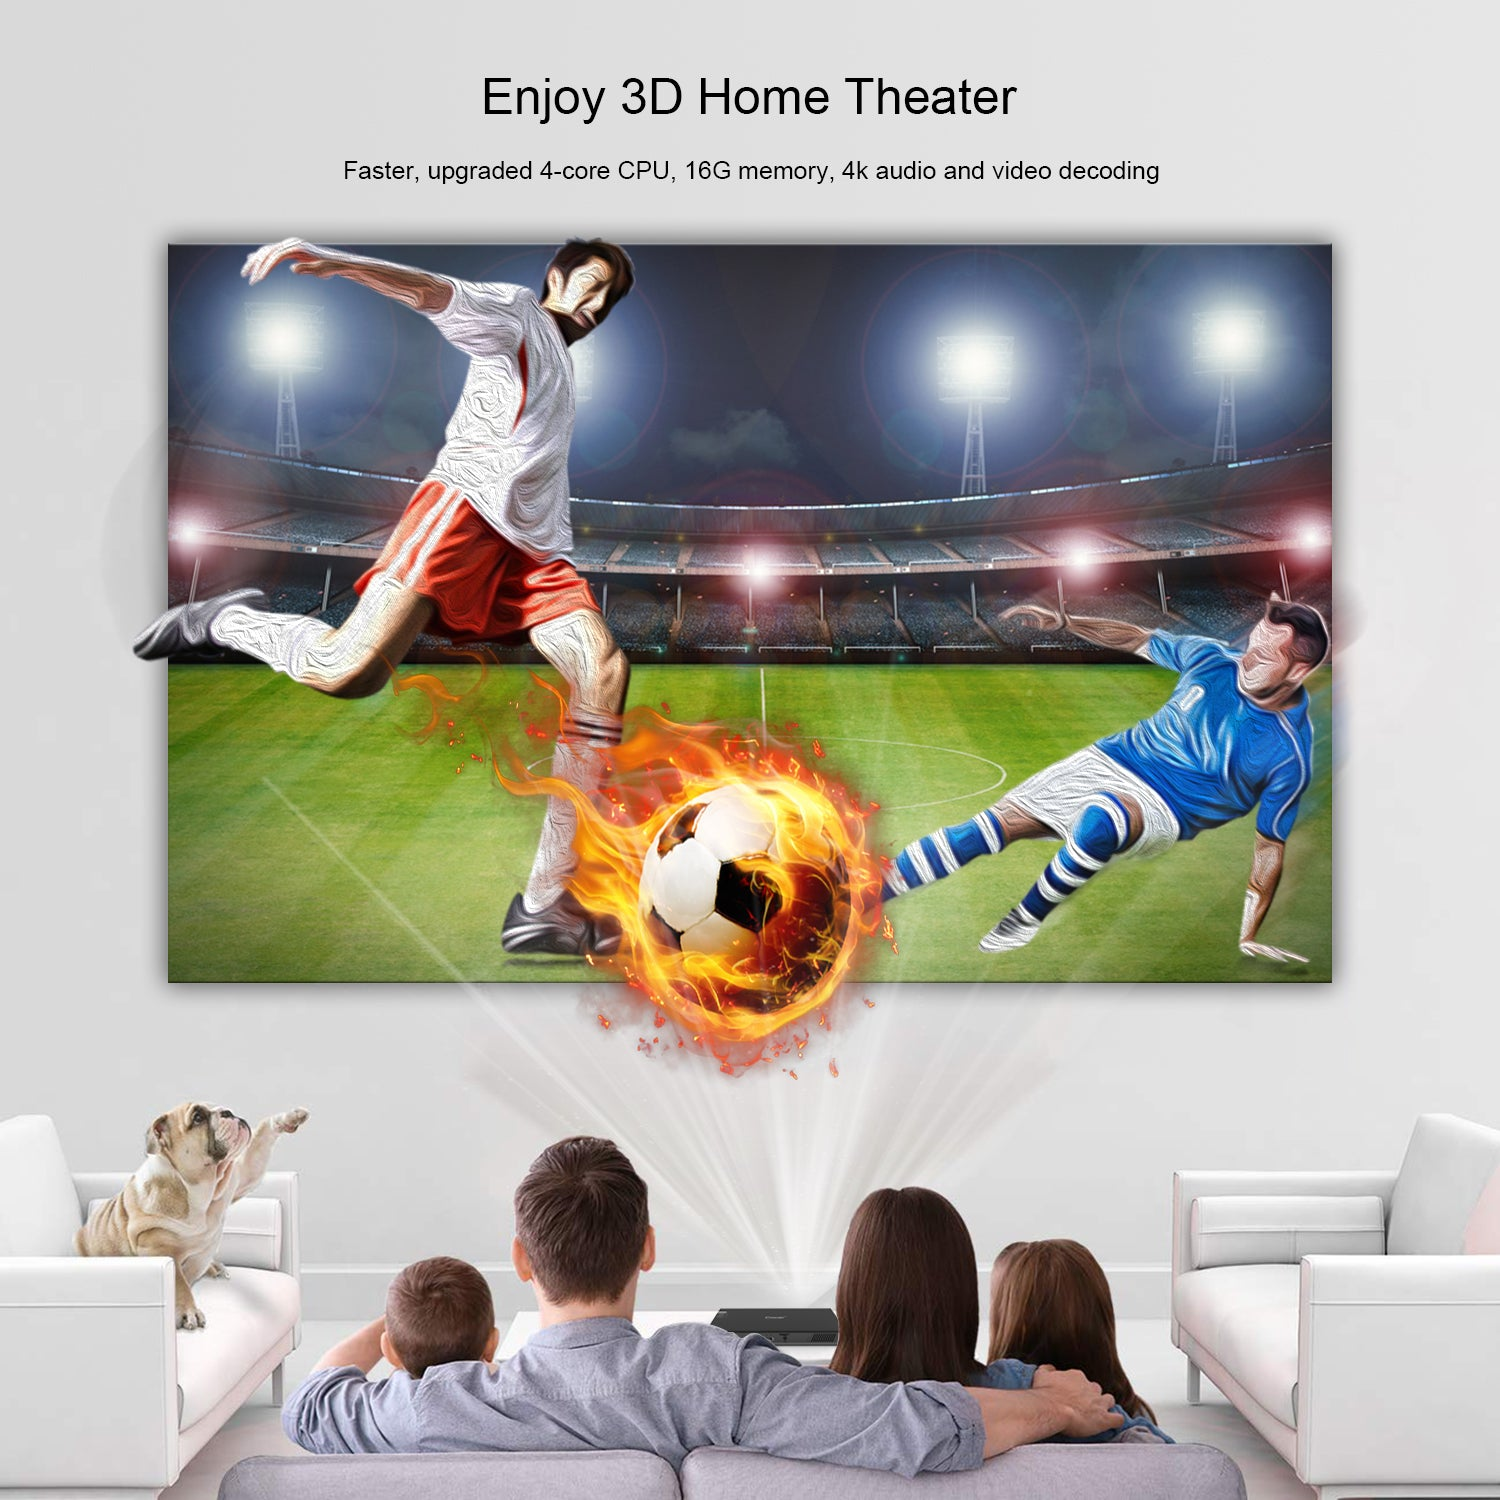 Toumei T5 Short Throw Projector Features 03